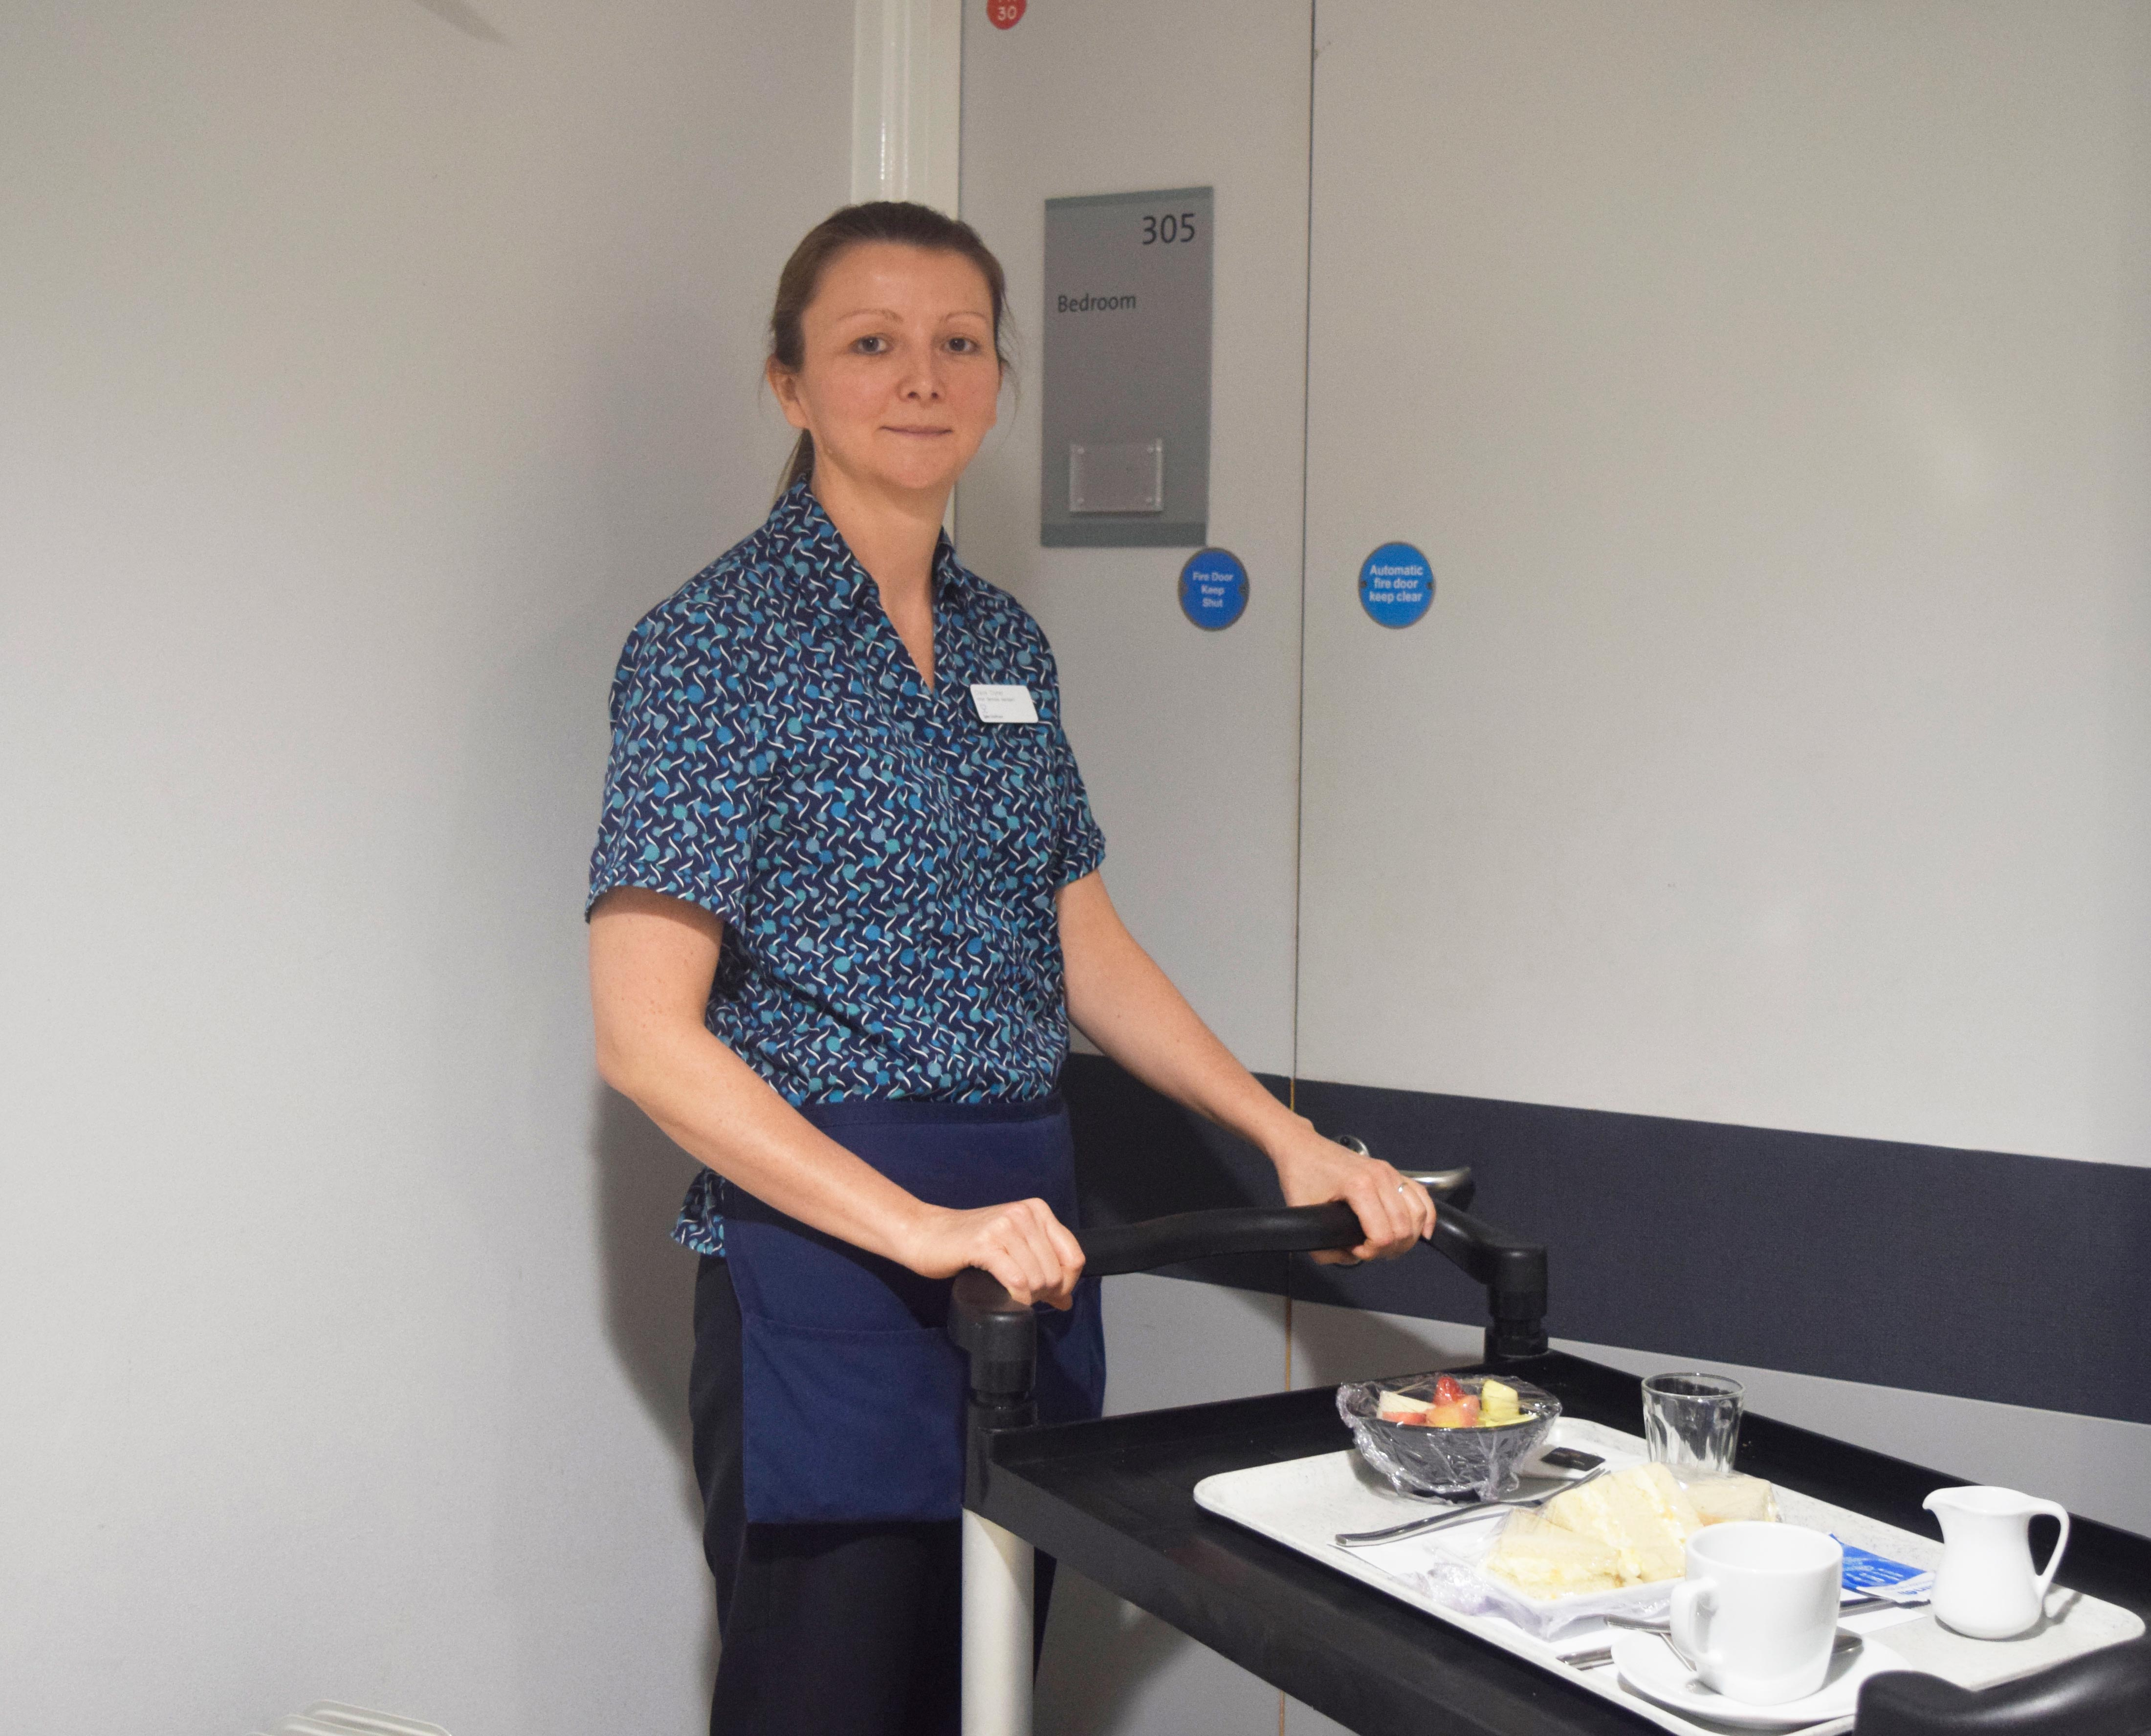 A day in the life of a Hotel Services Assistant at Spire Bristol Hospital